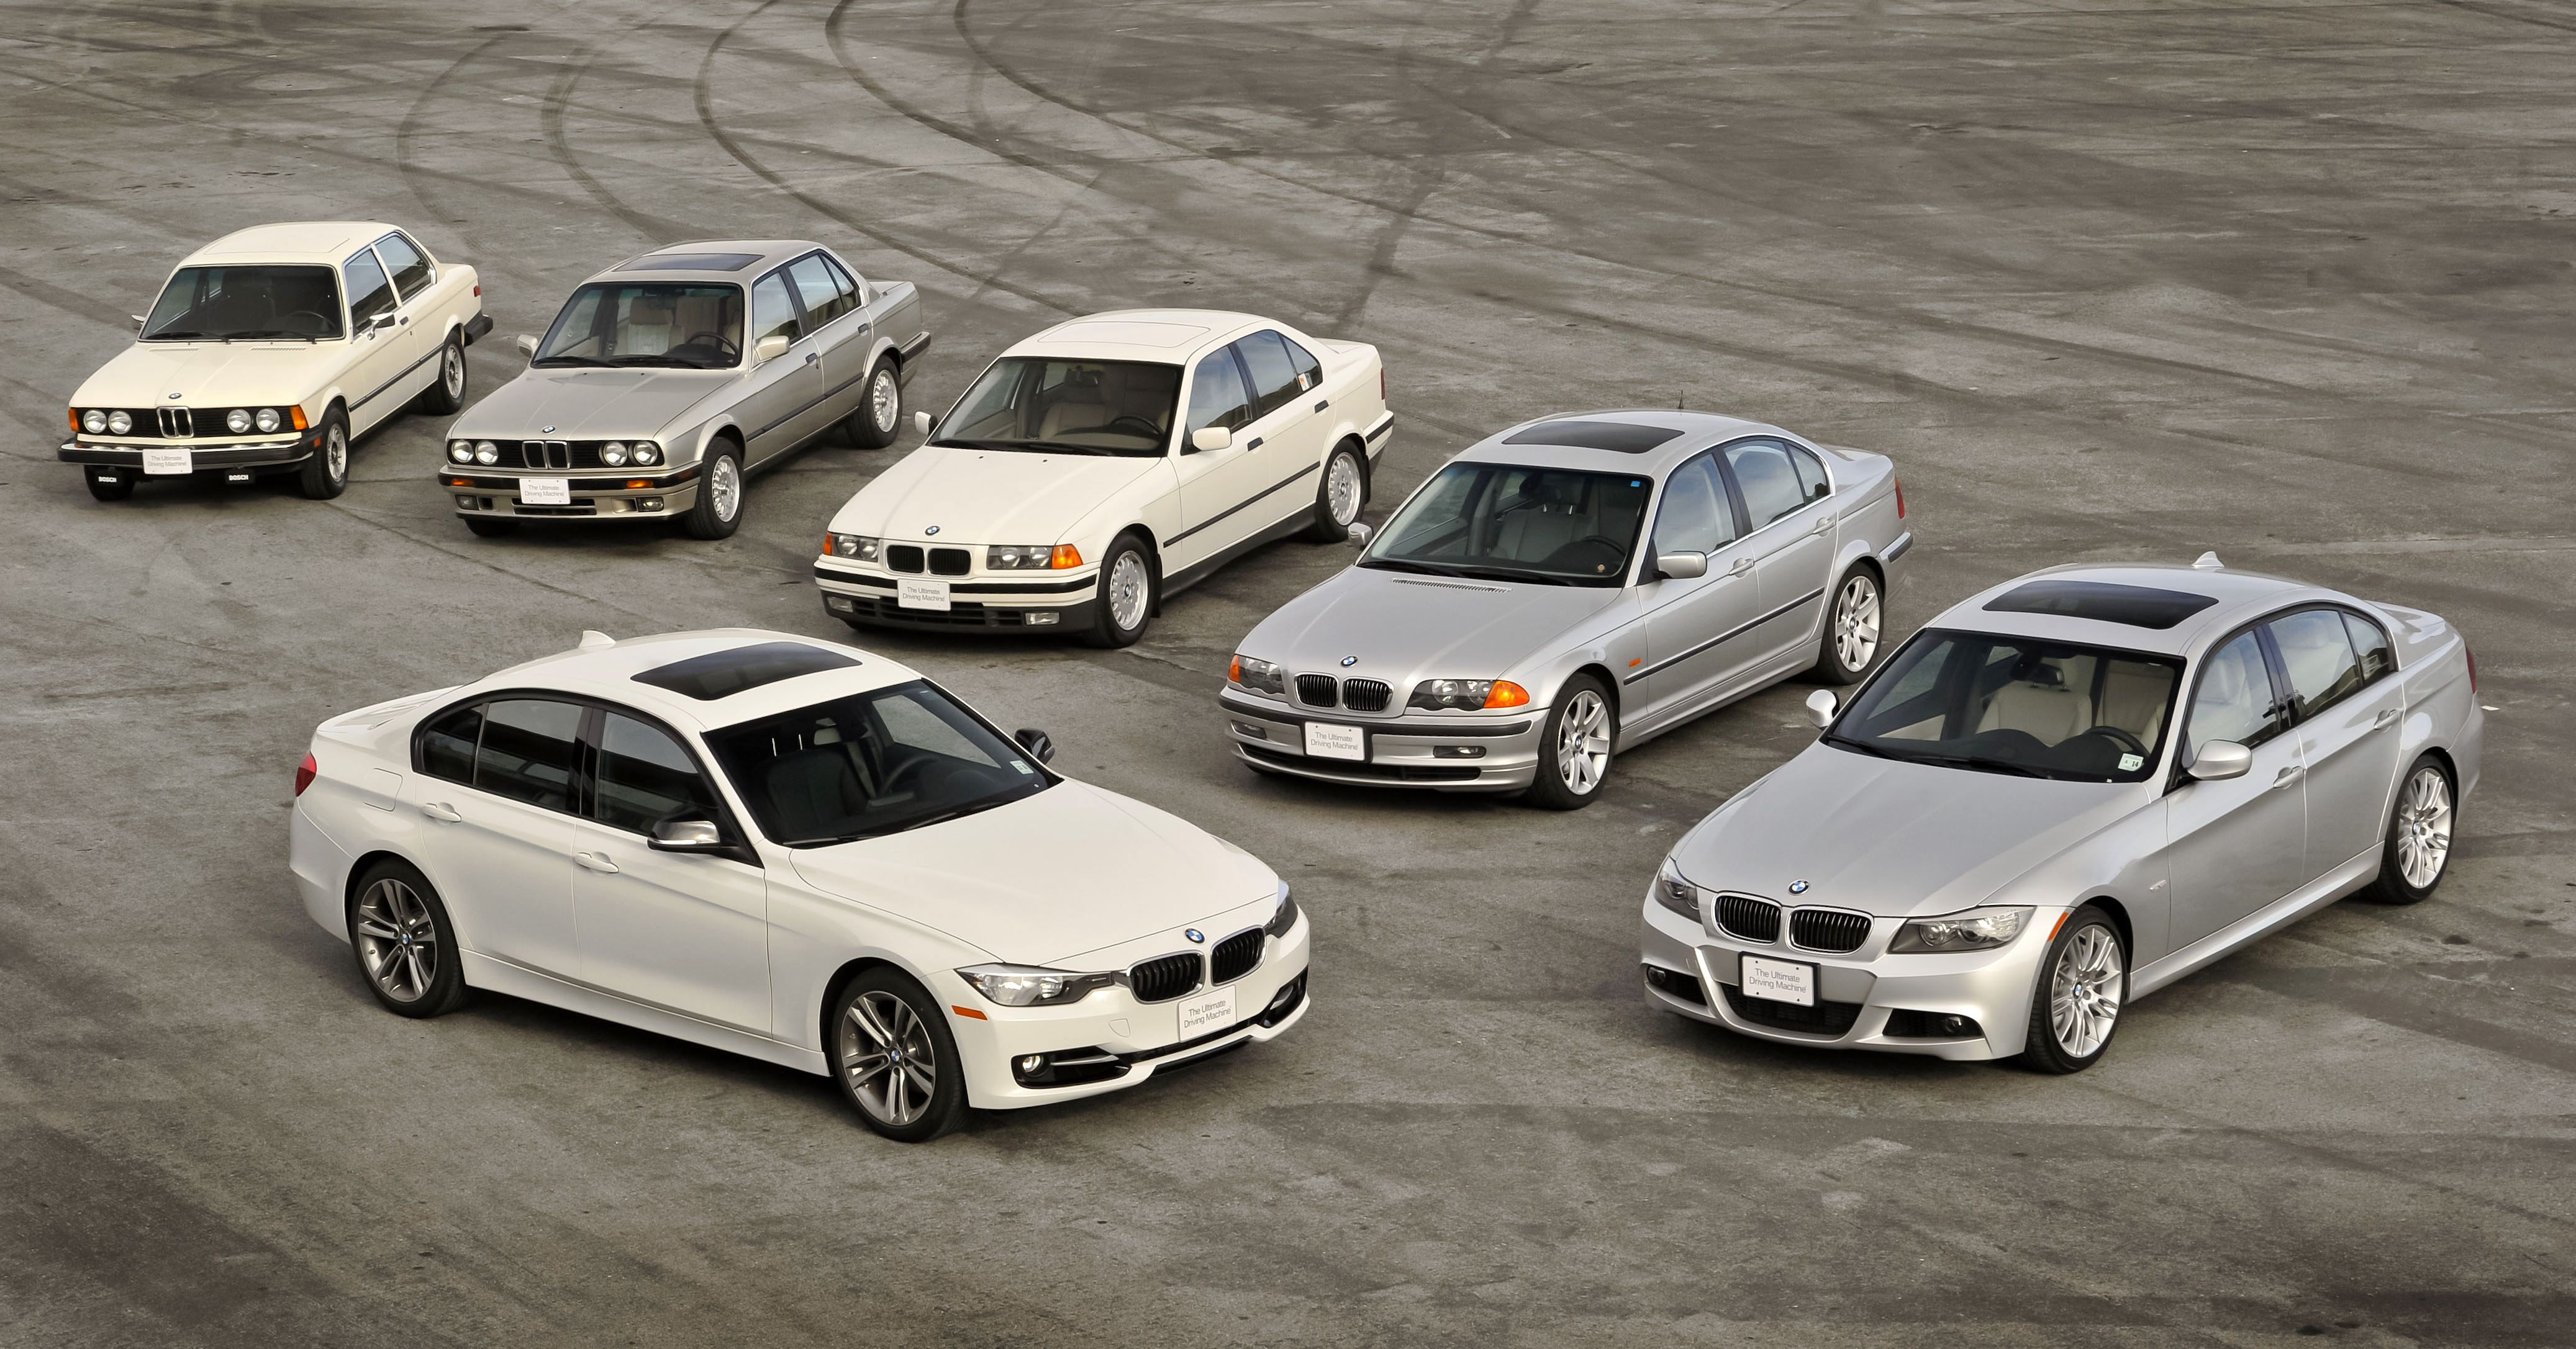 BMW to Show New 3 Series, New 6 Series Gran Coupe, and M5 at 2012 Amelia Island Concours d'Elegance